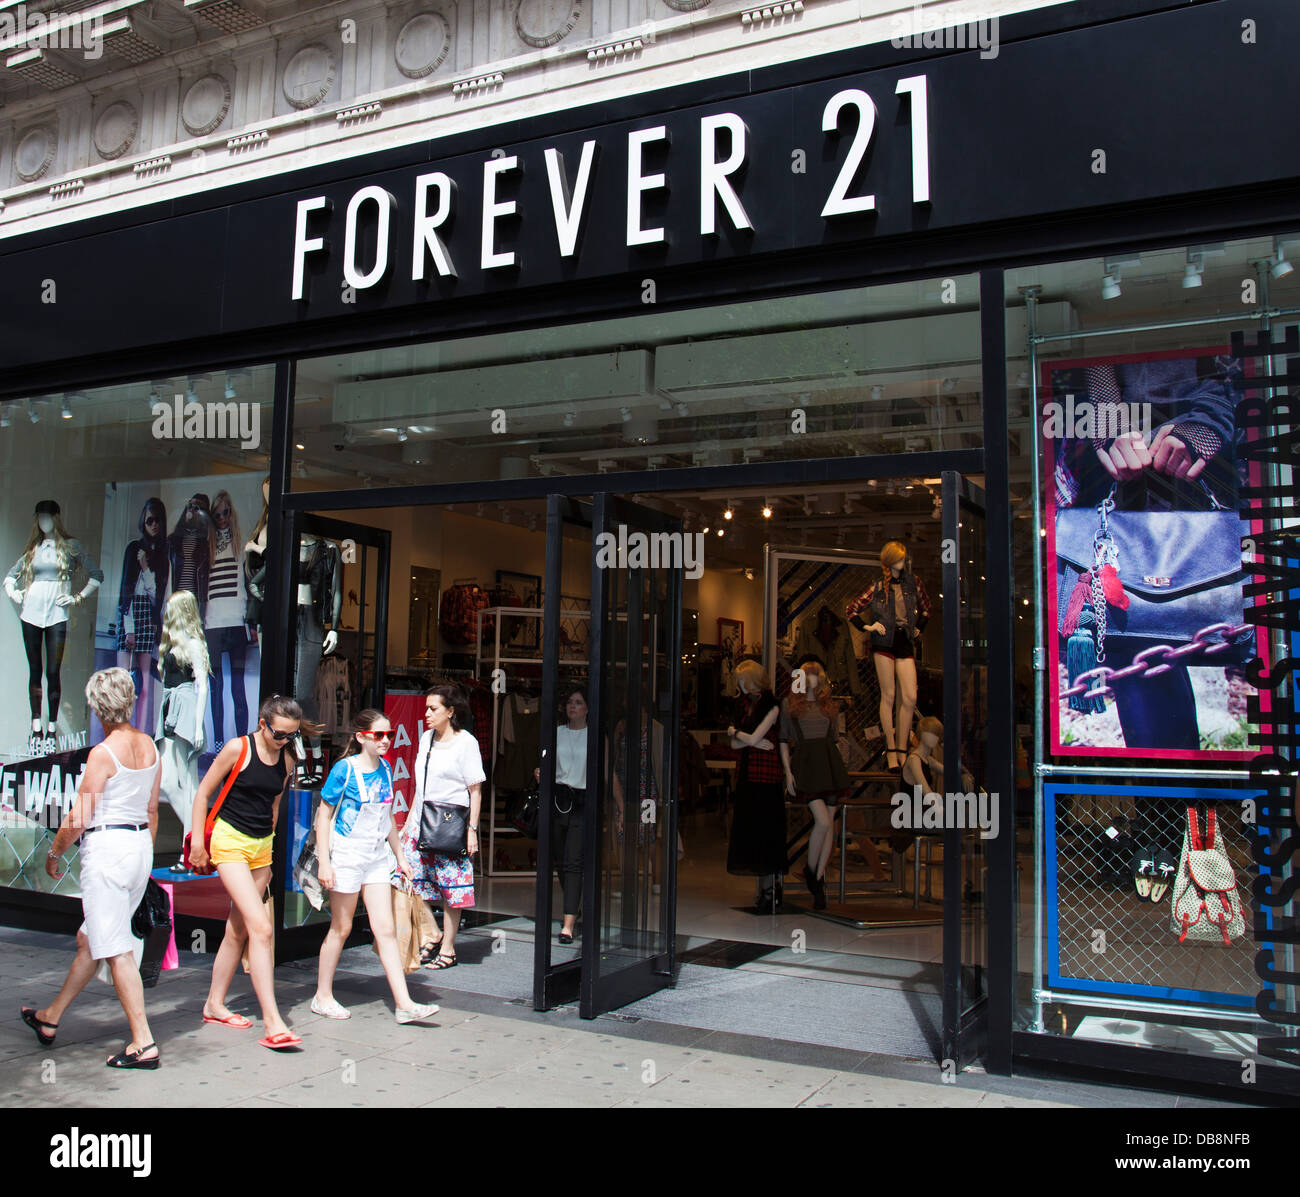 The Forever 21 store, Oxford Street, London. - Stock Image